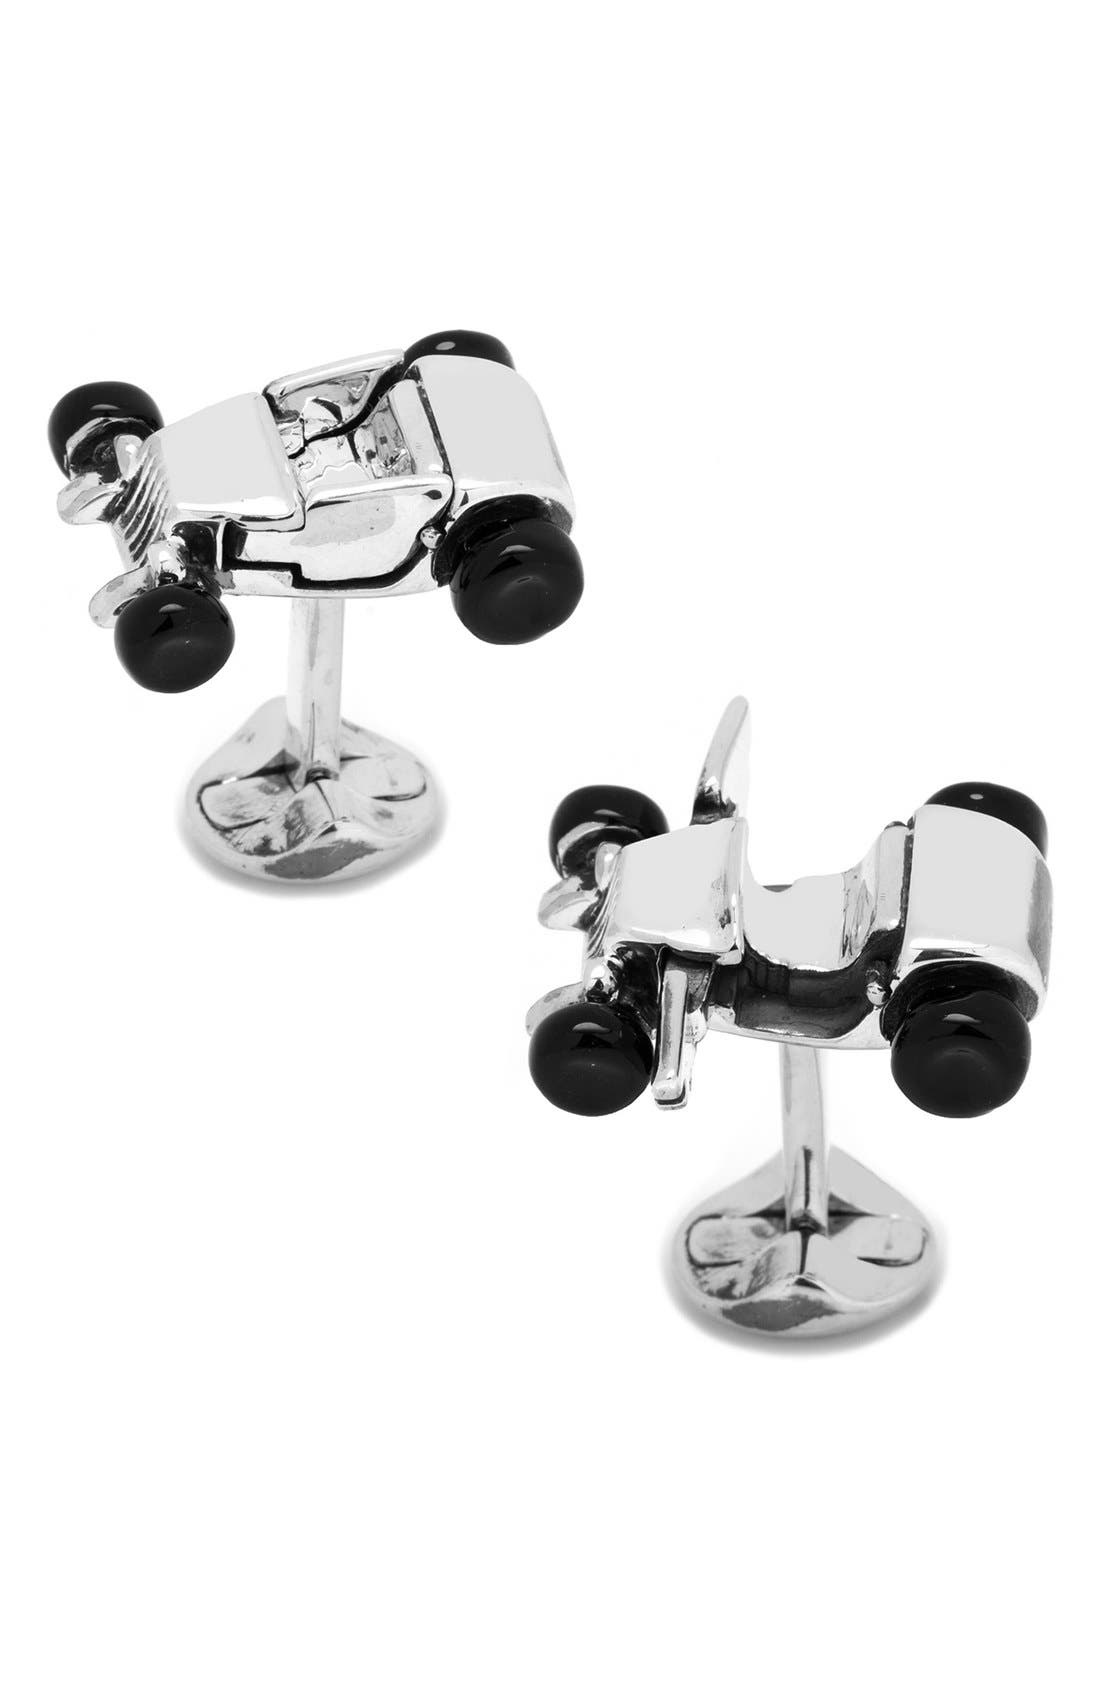 Alternate Image 1 Selected - Ox and Bull Trading Co. Hot Rod Cuff Links